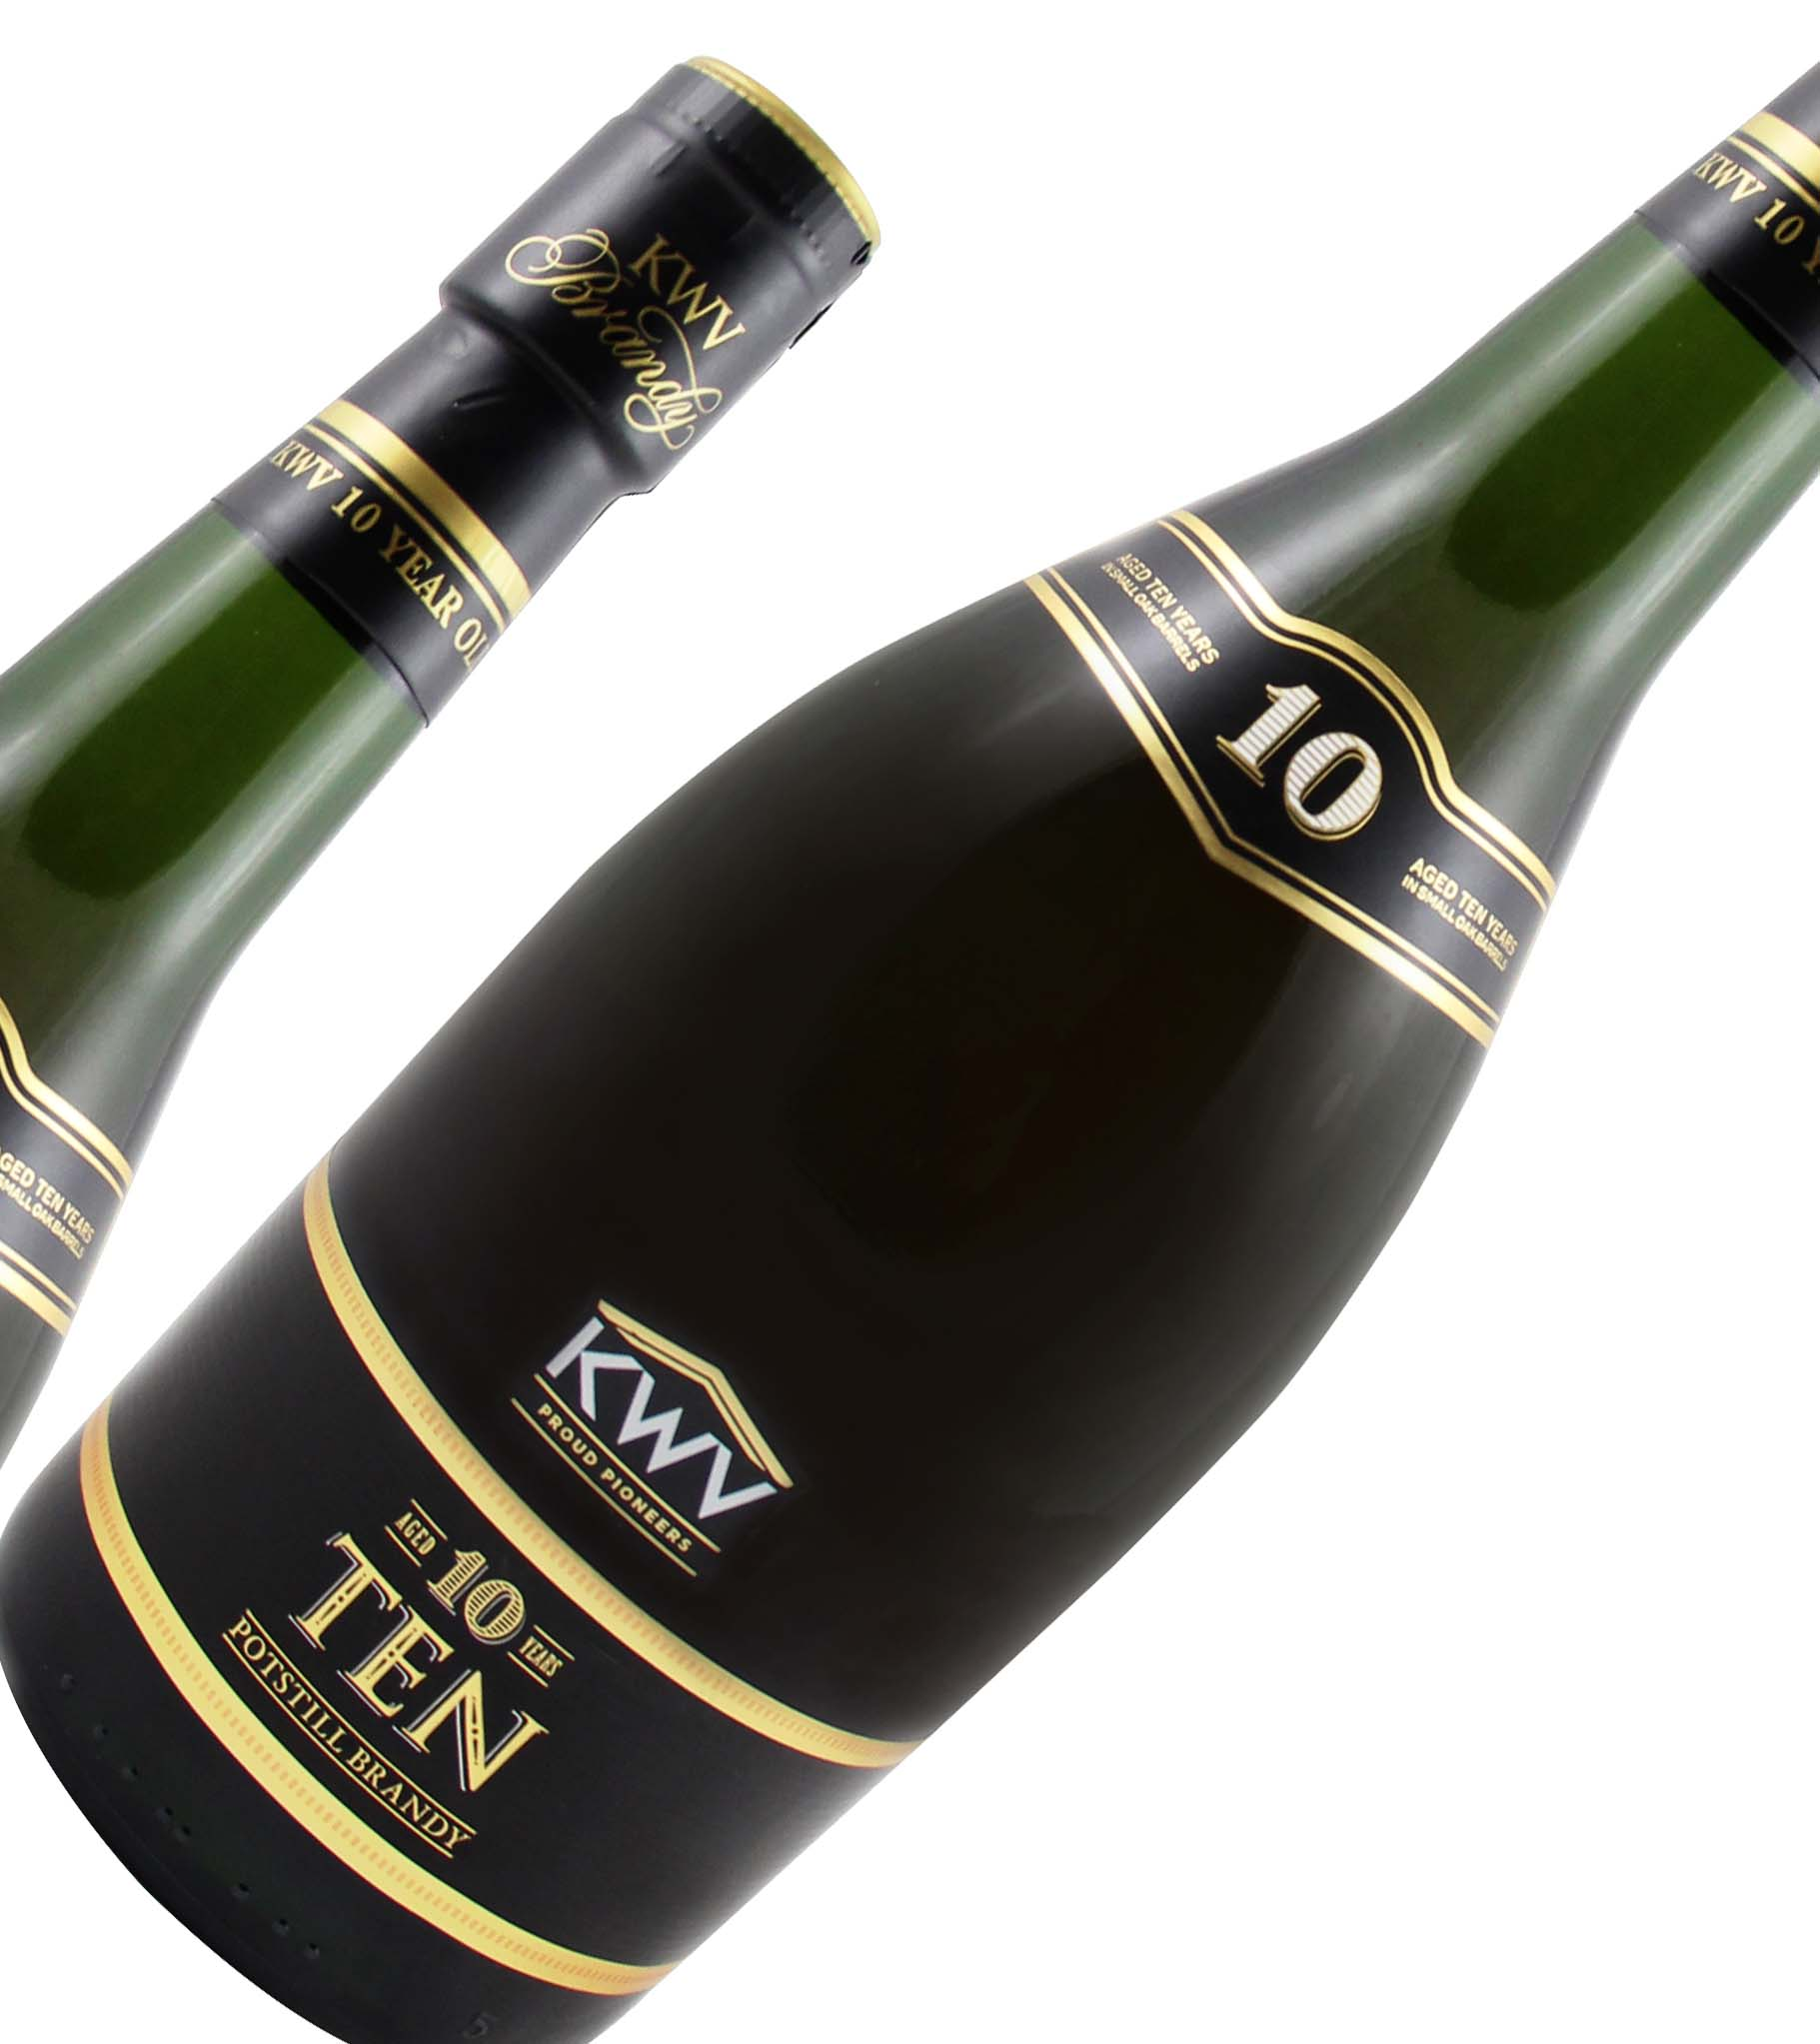 KWV 10 YO Brandy 700ml